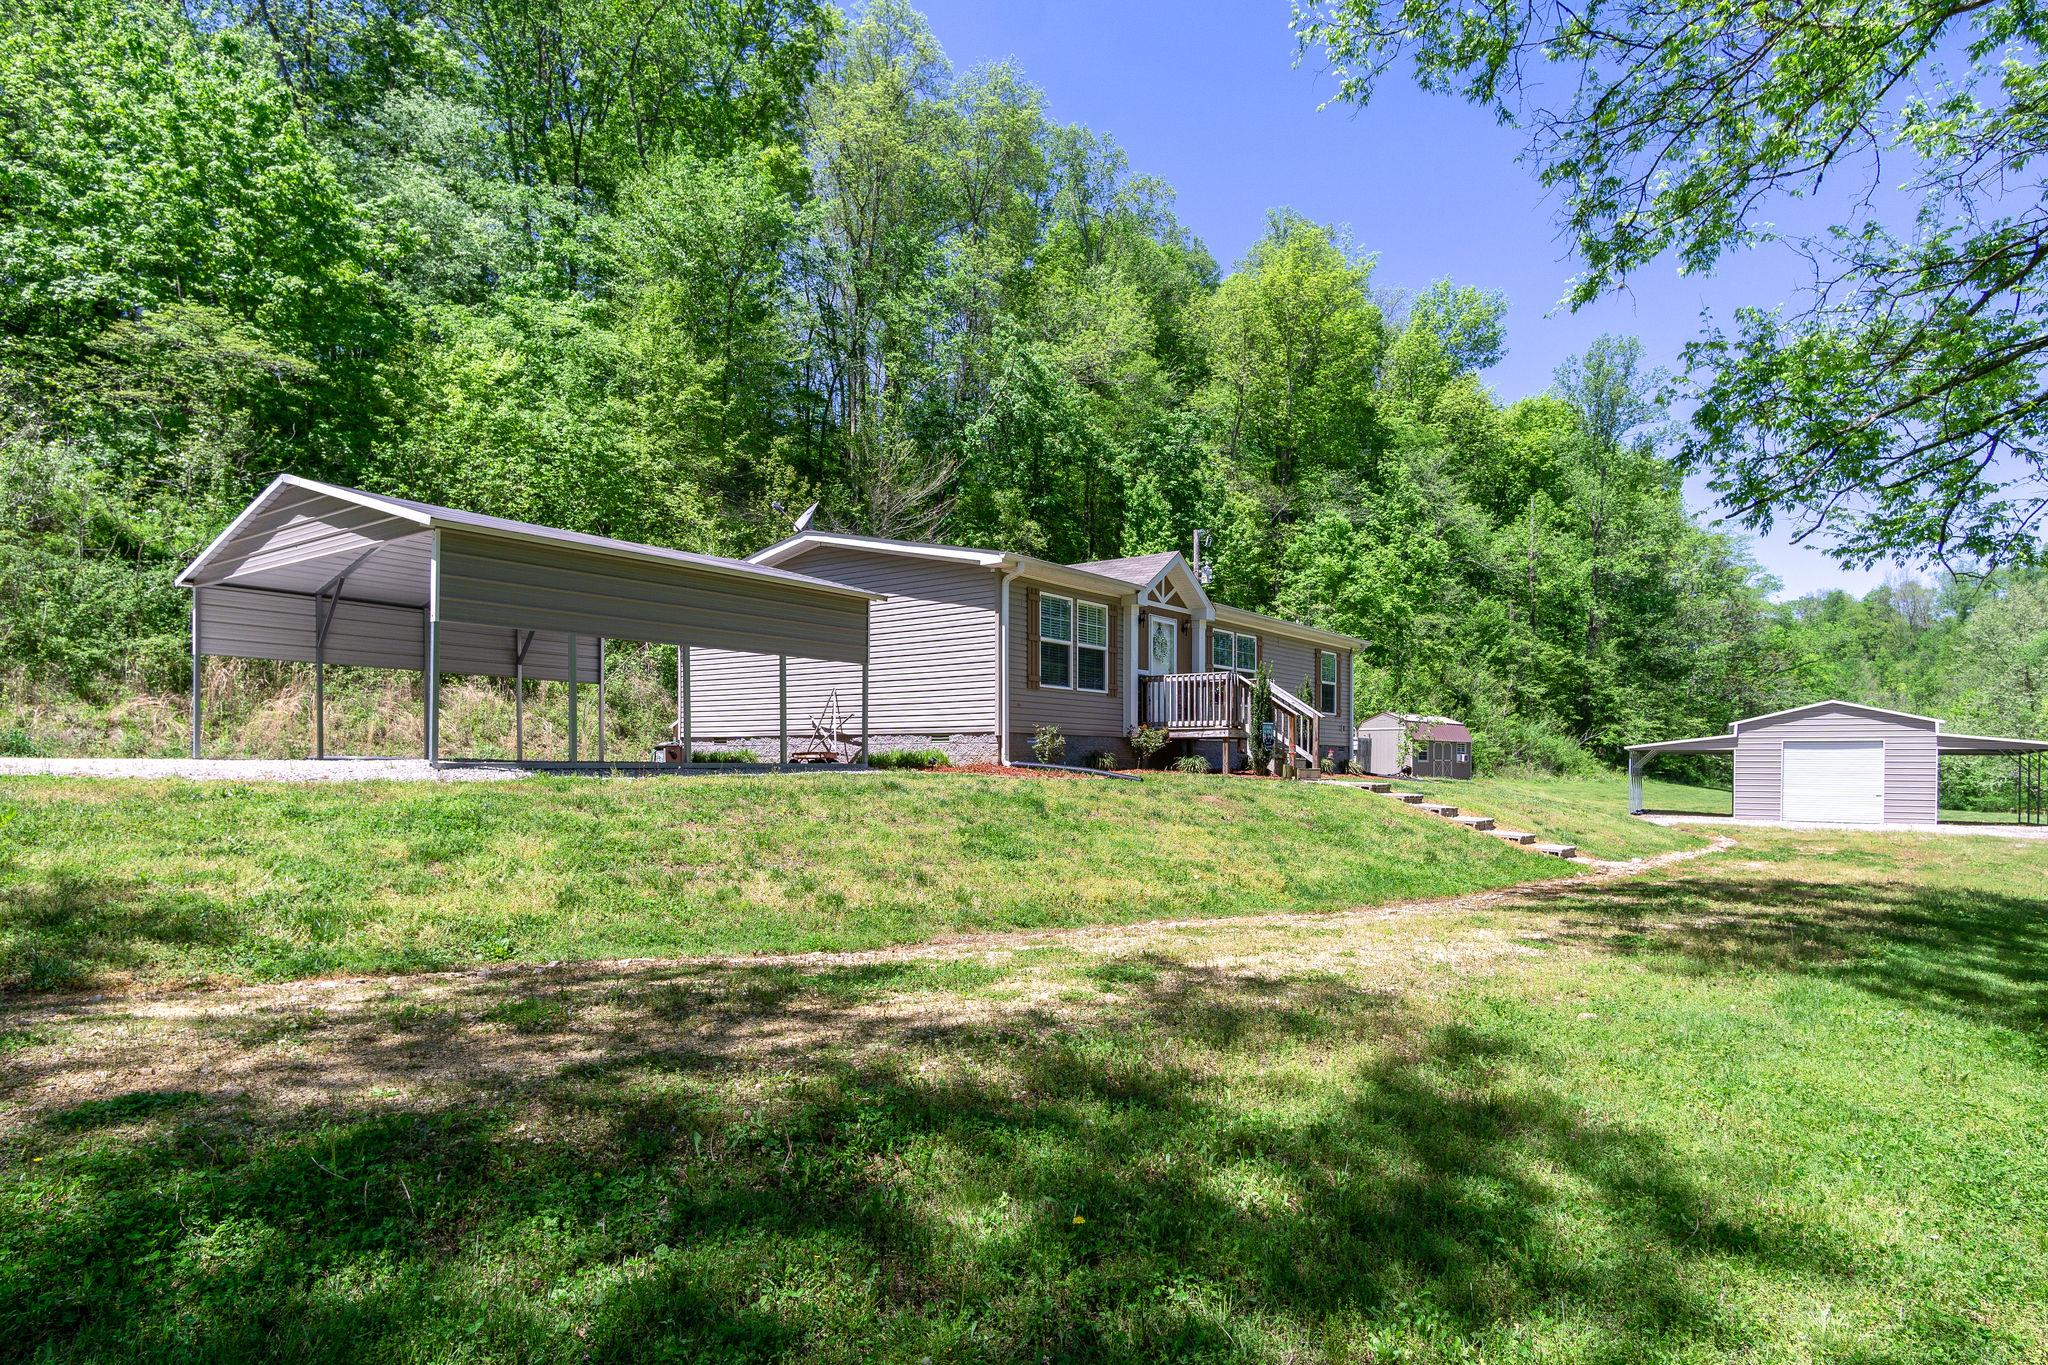 3545 New Highway 7, Santa Fe, TN 38482 - Santa Fe, TN real estate listing